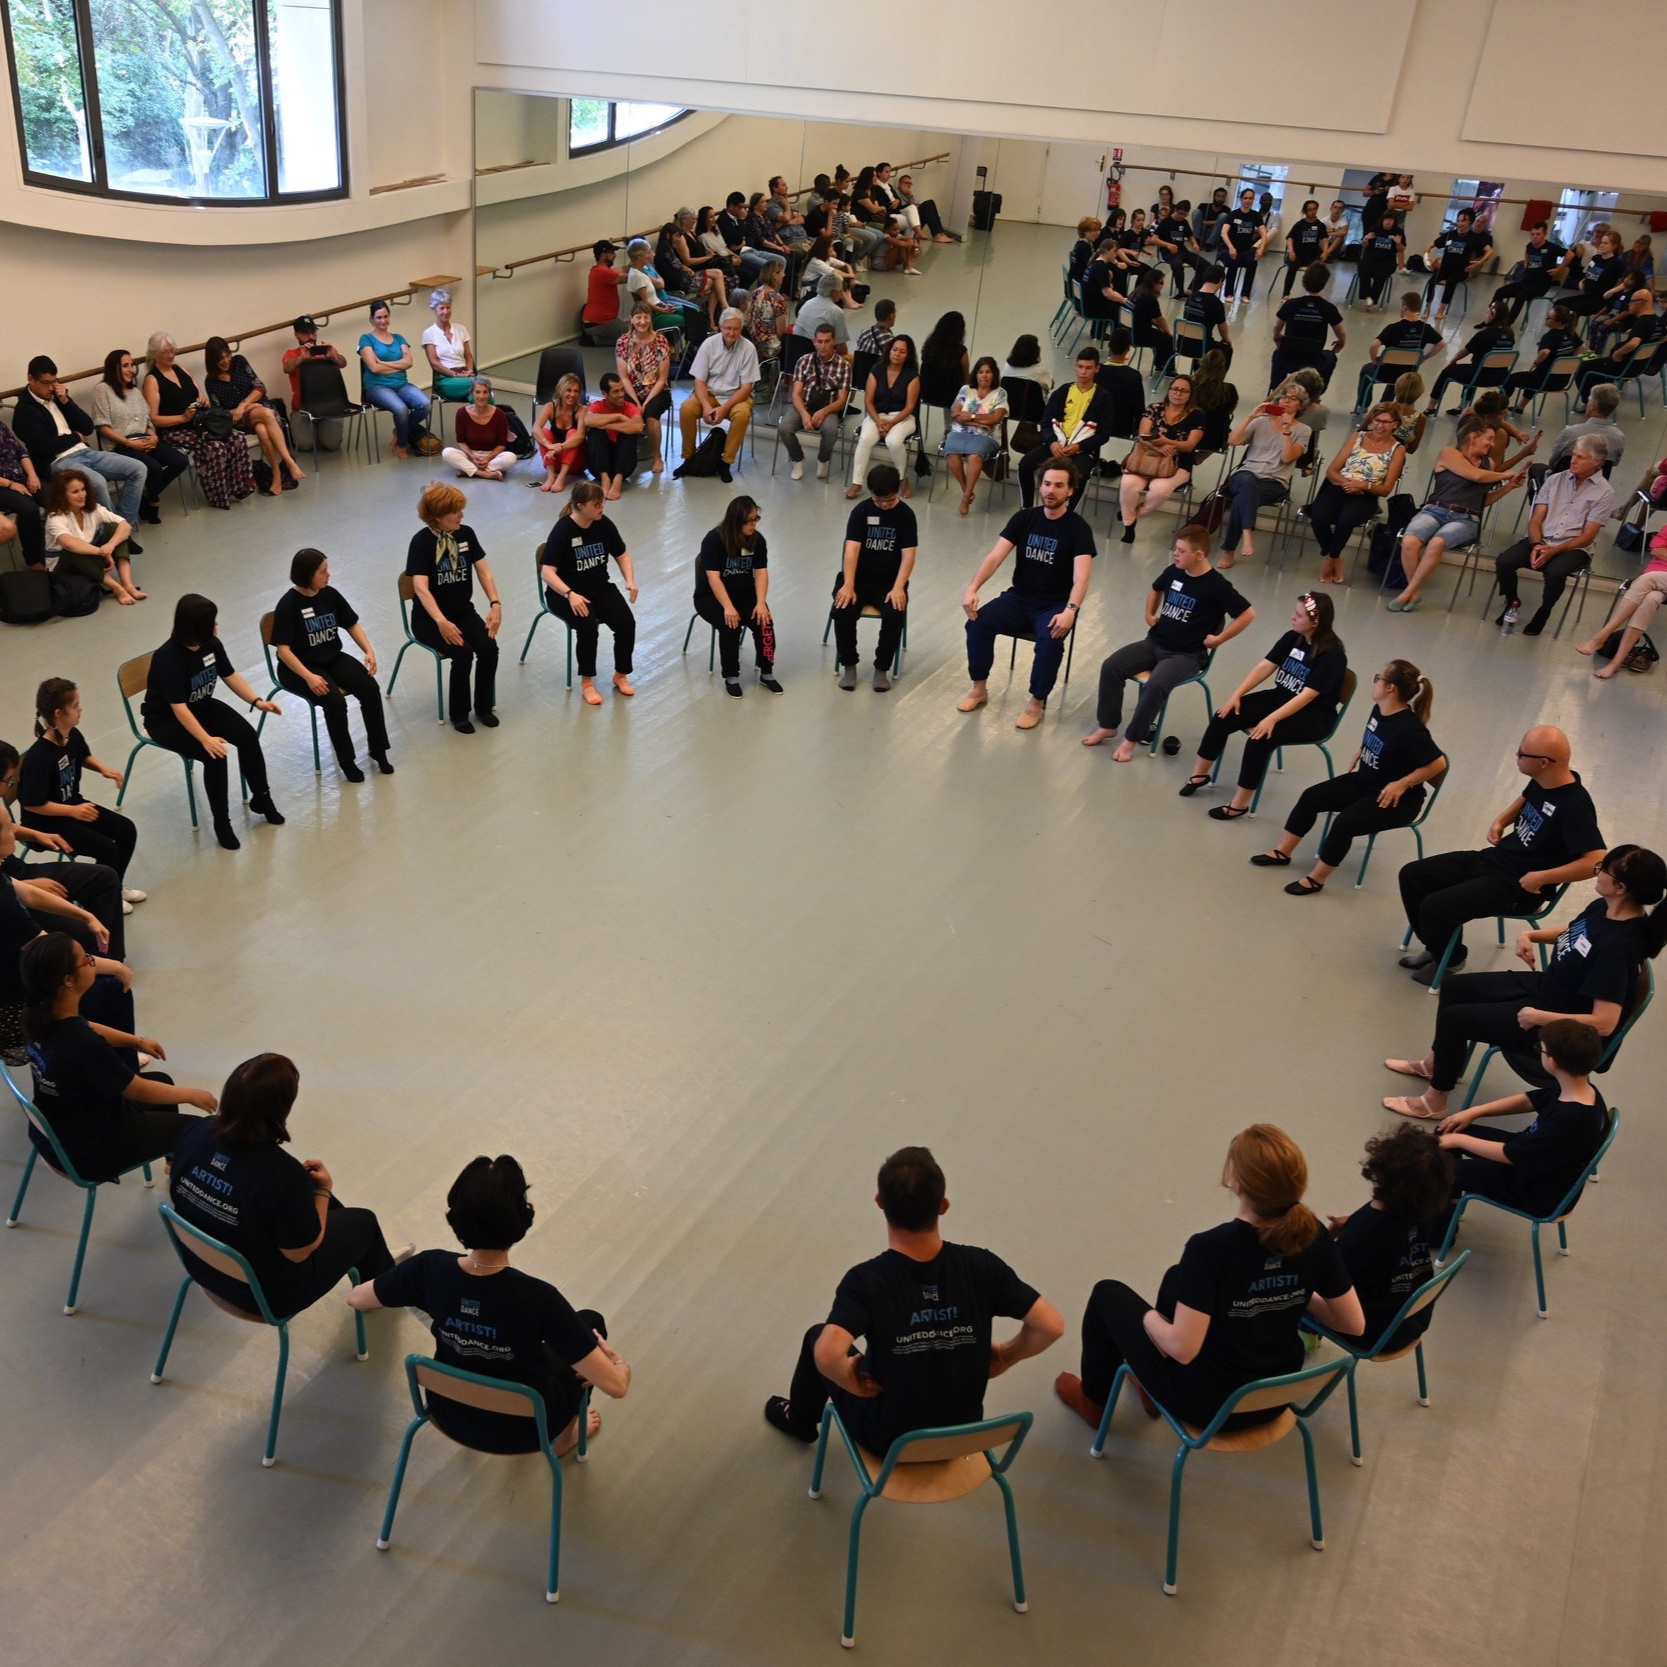 $1500 - SPONSOR A 2 DAY UNITED DANCE ART COURSE